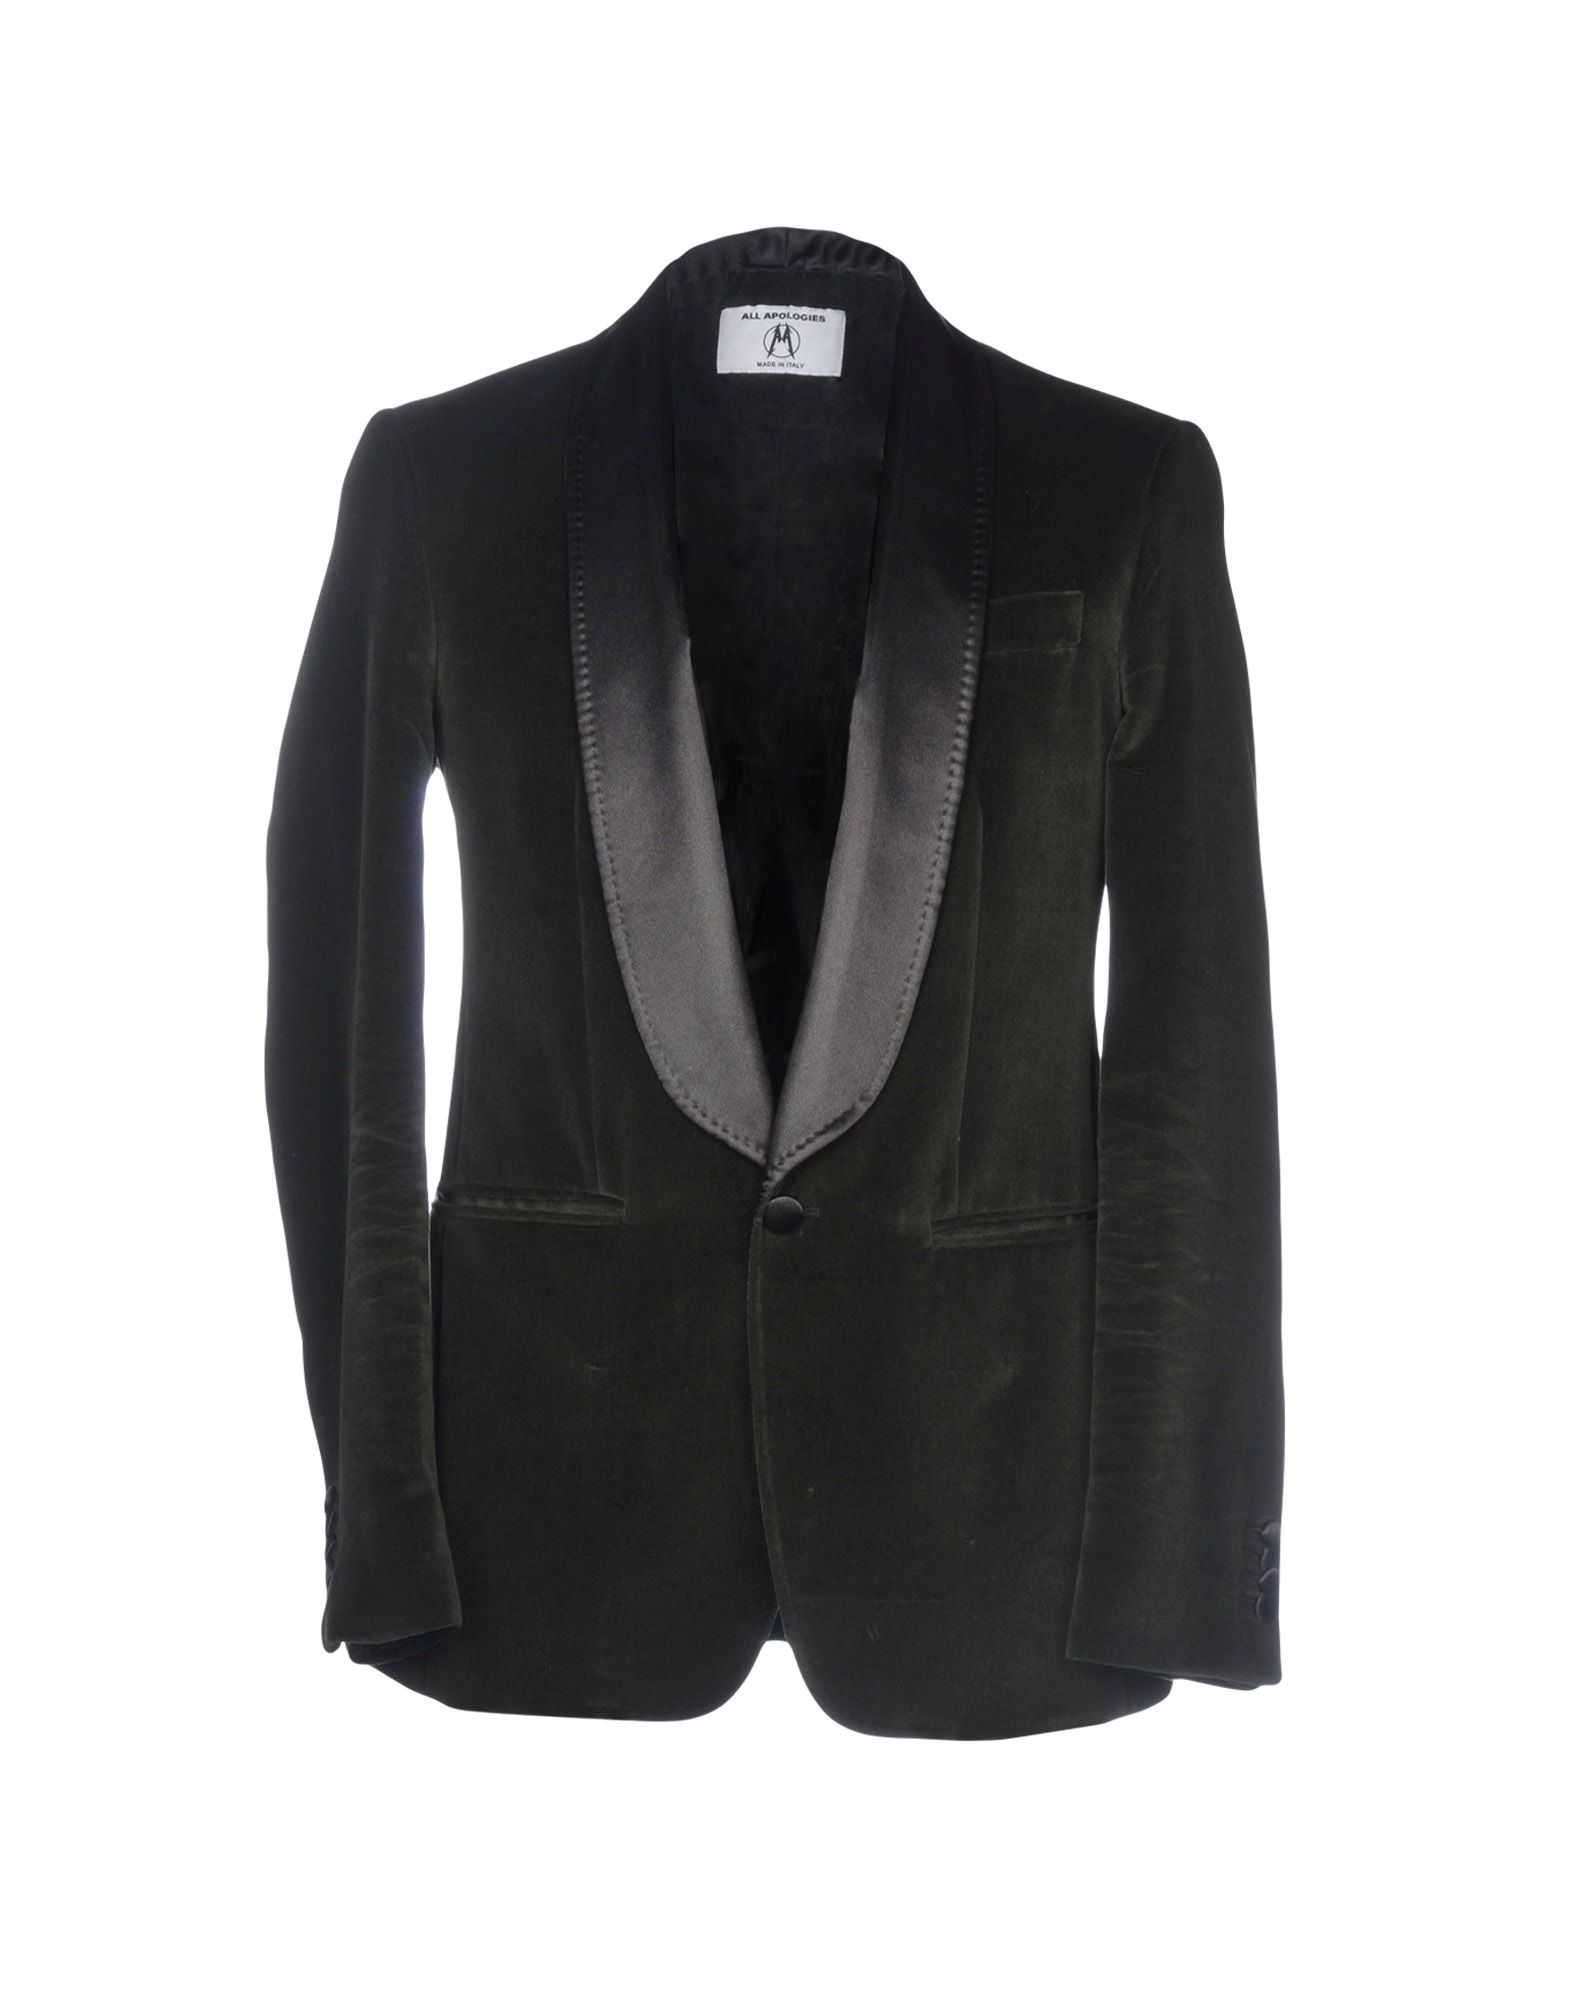 ALL APOLOGIES Blazer in Military Green